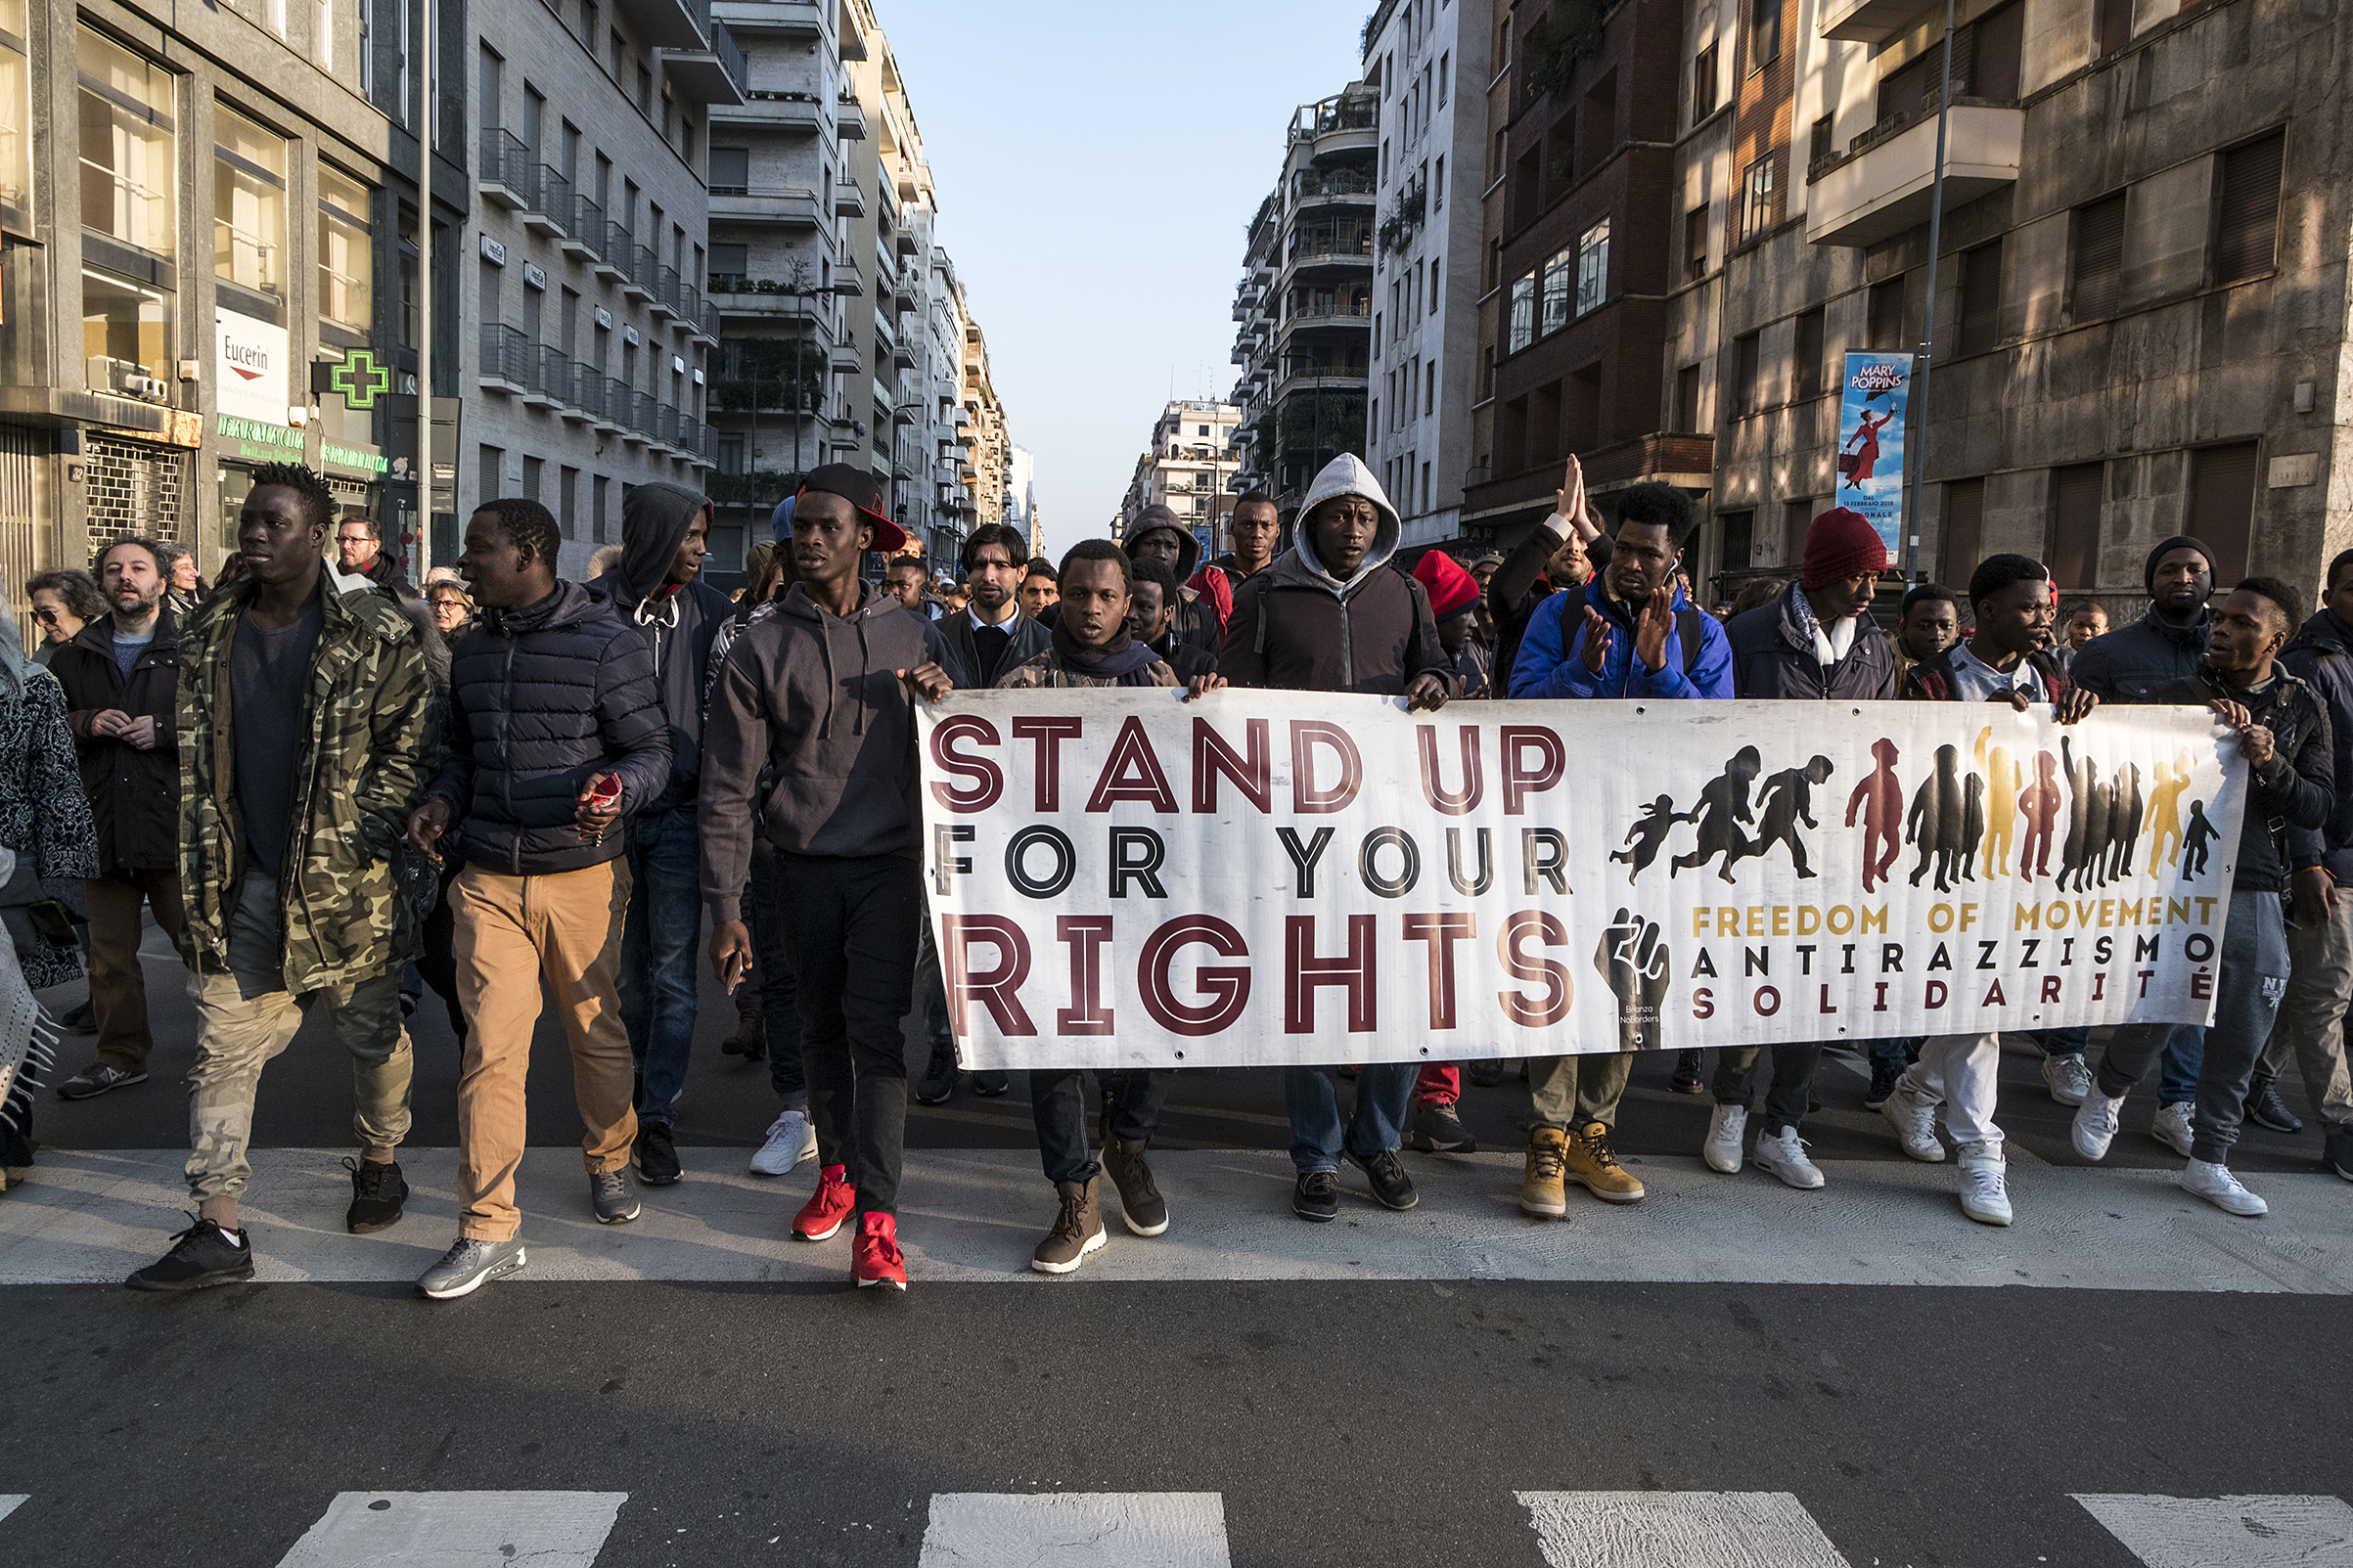 After the attempted massacre by a new fascist in Macerata, the entire community of migrants and Italians called a demonstration of support for the victims.